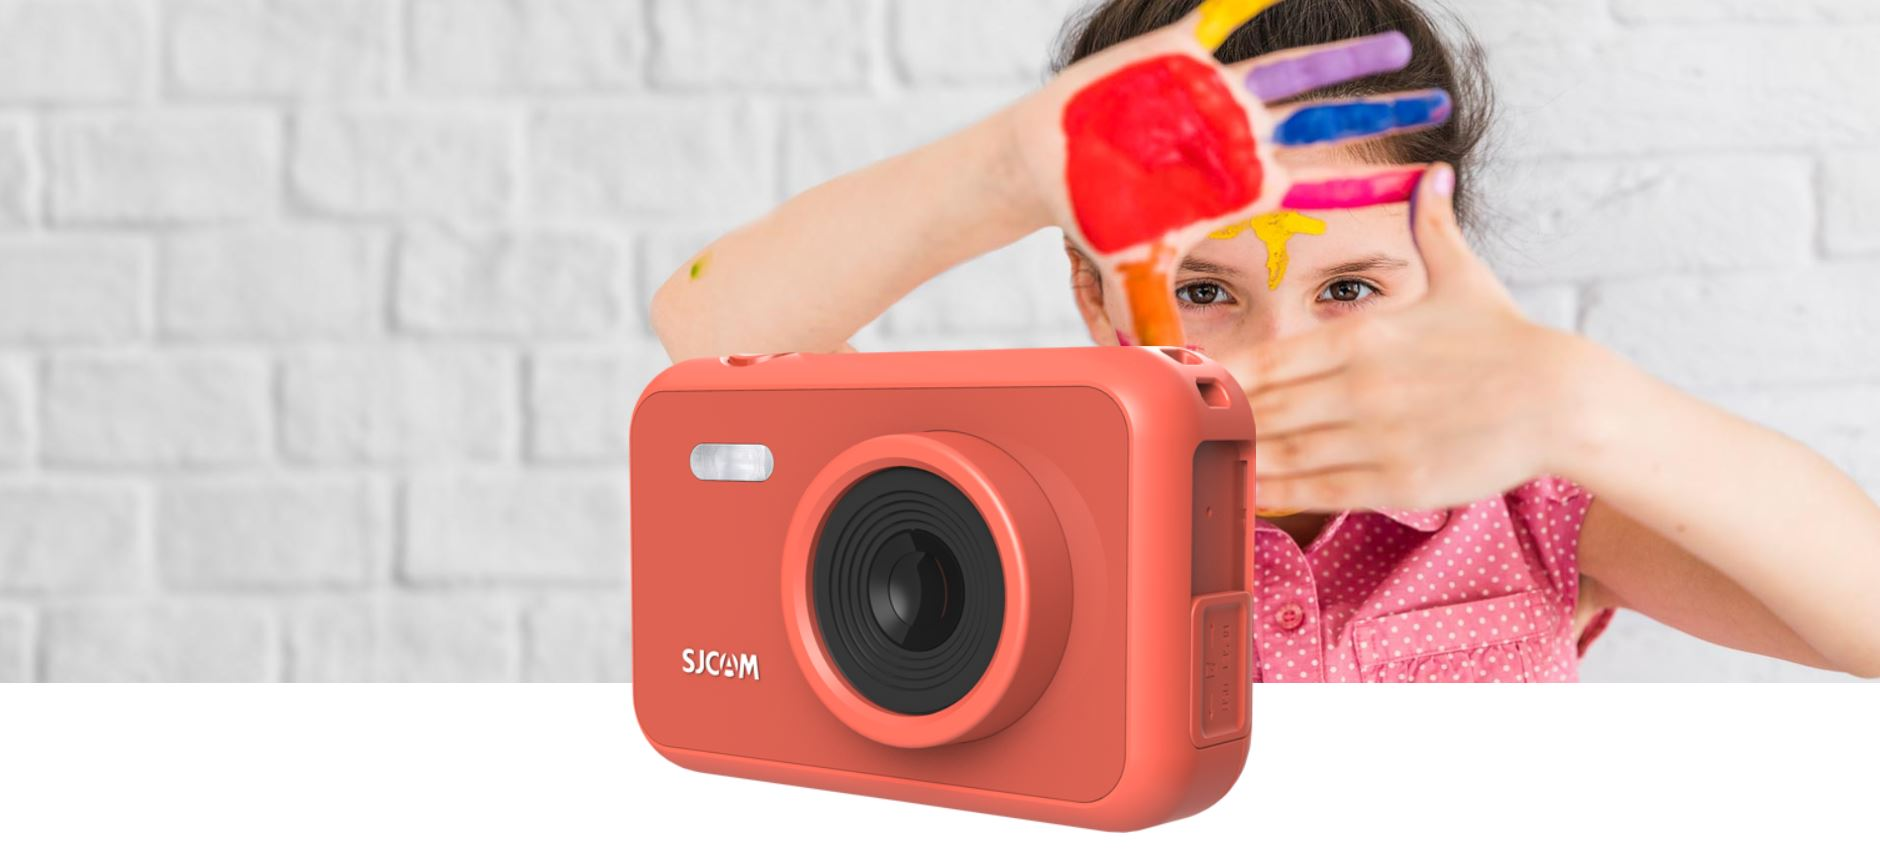 #Kamera SJCAM FUN CAM RED